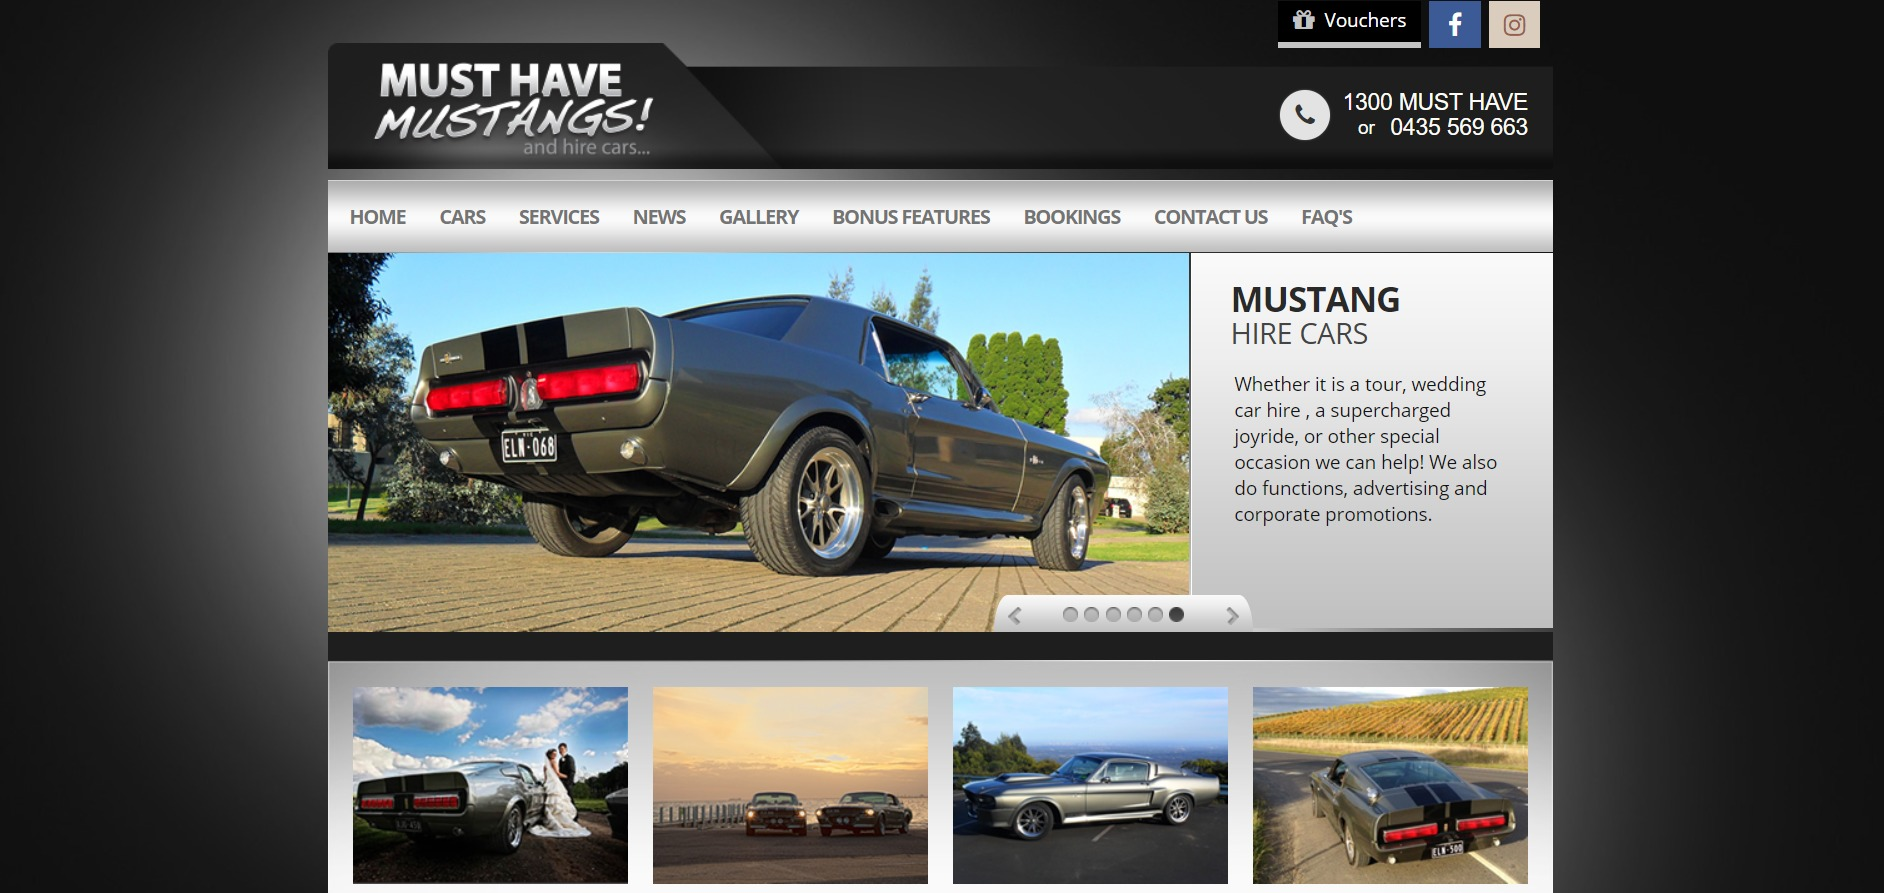 Musthave Mustang Wedding Car Hire